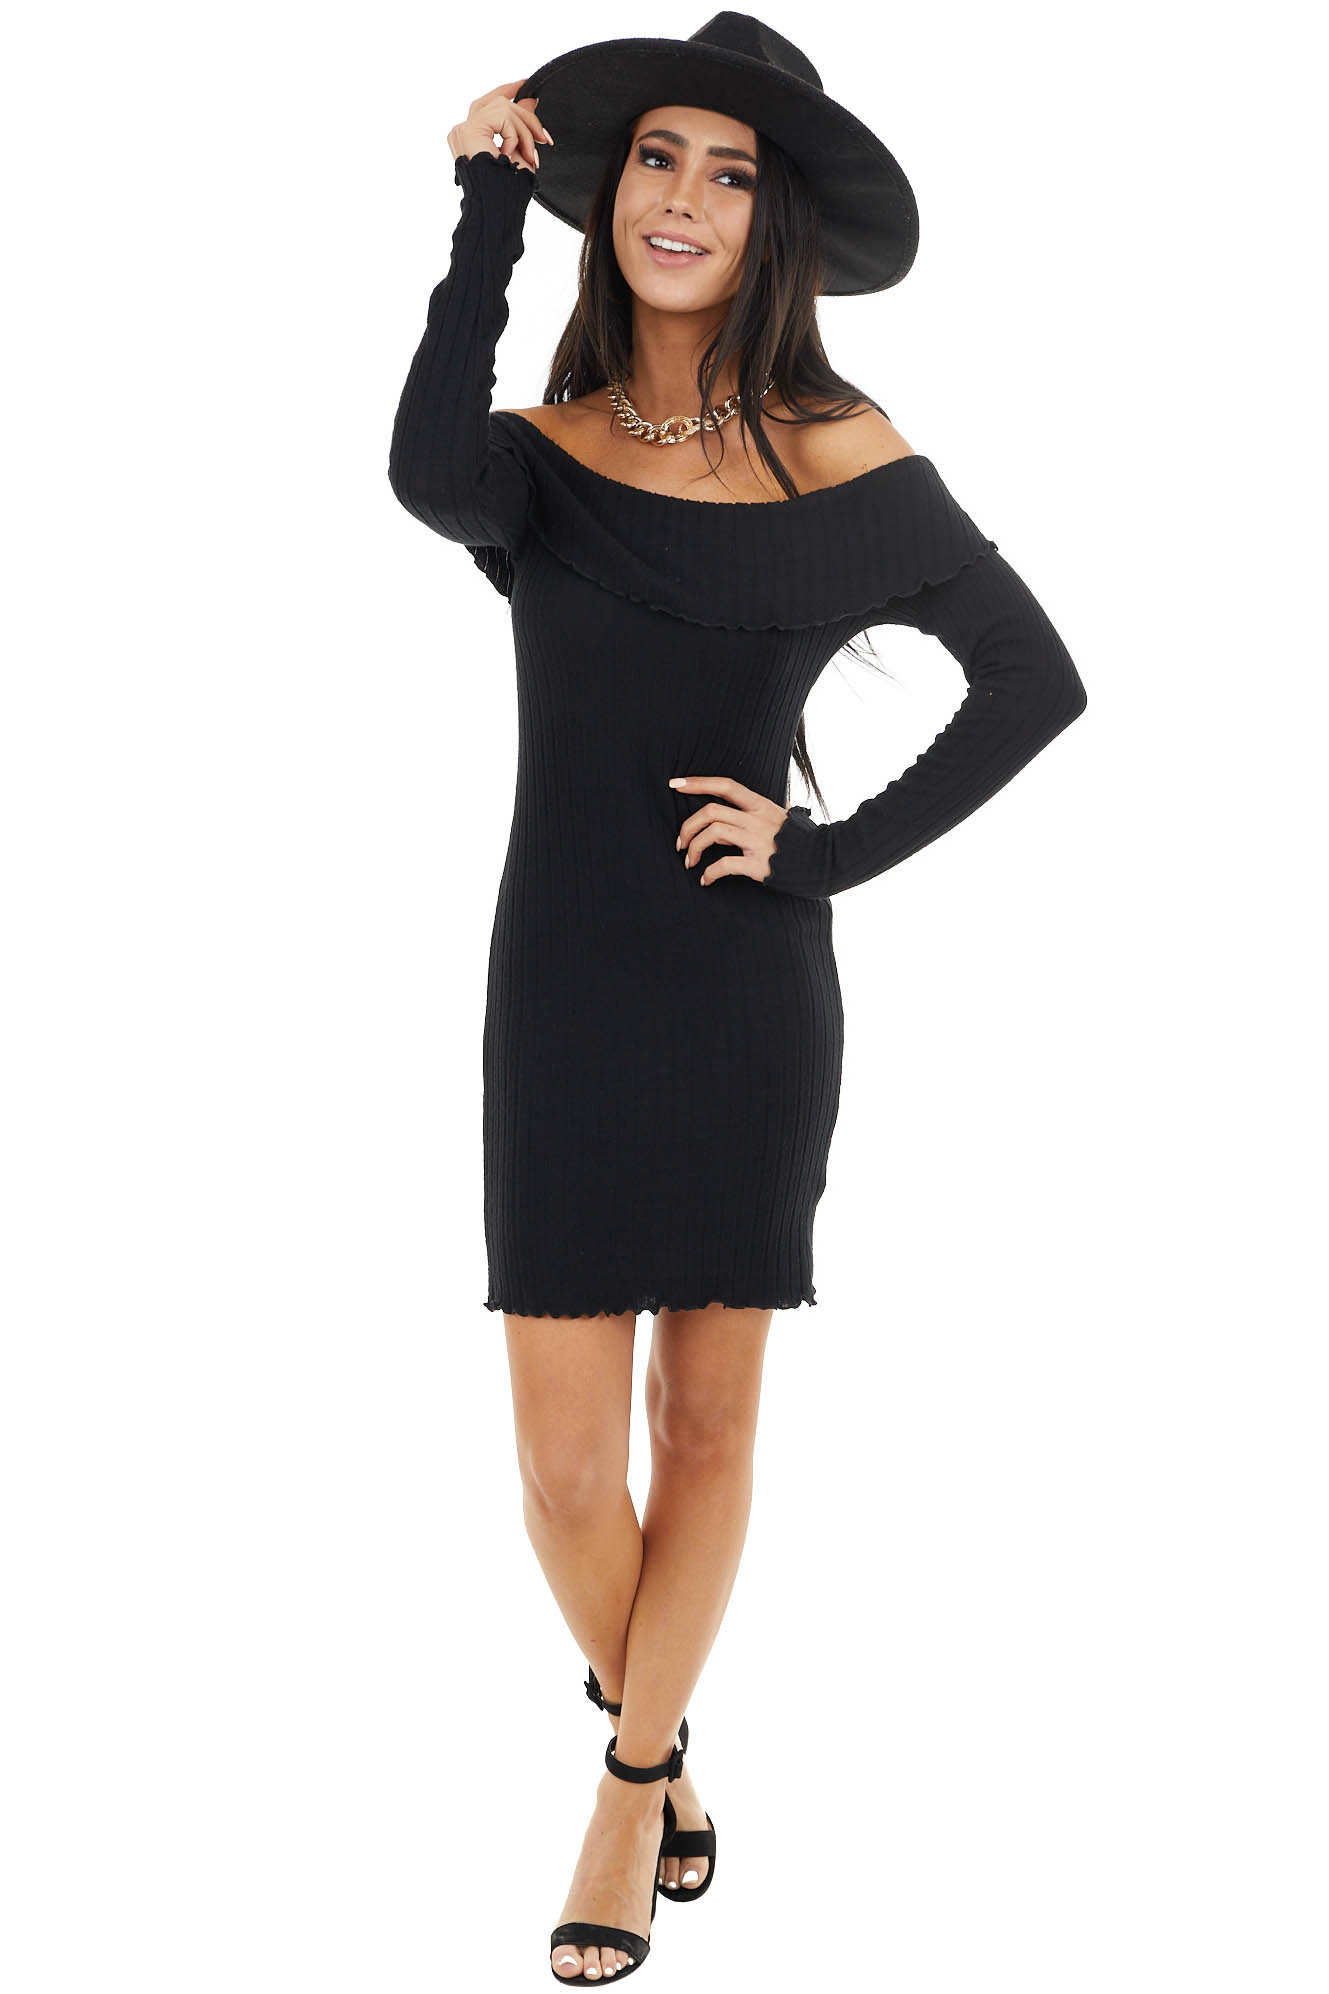 Black Ribbed Knit Off the Shoulder Mini Dress with Ruffles